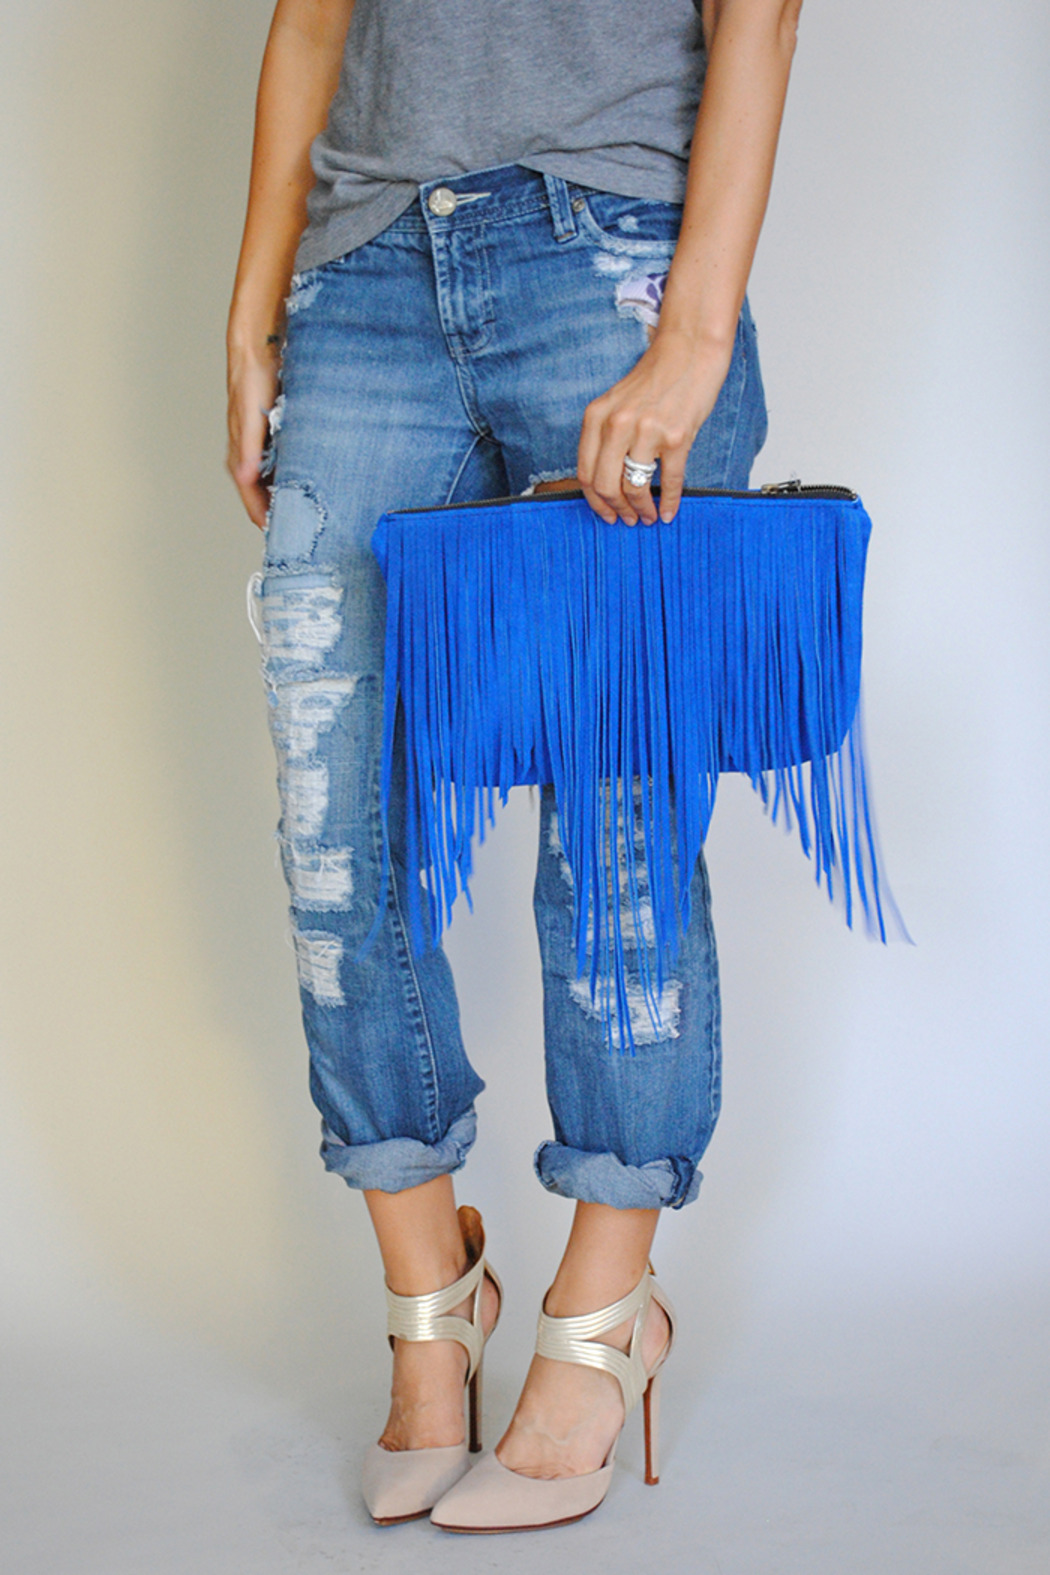 I.D. internoscia design Suede Fringe Clutch from Bucktown by von Z ...